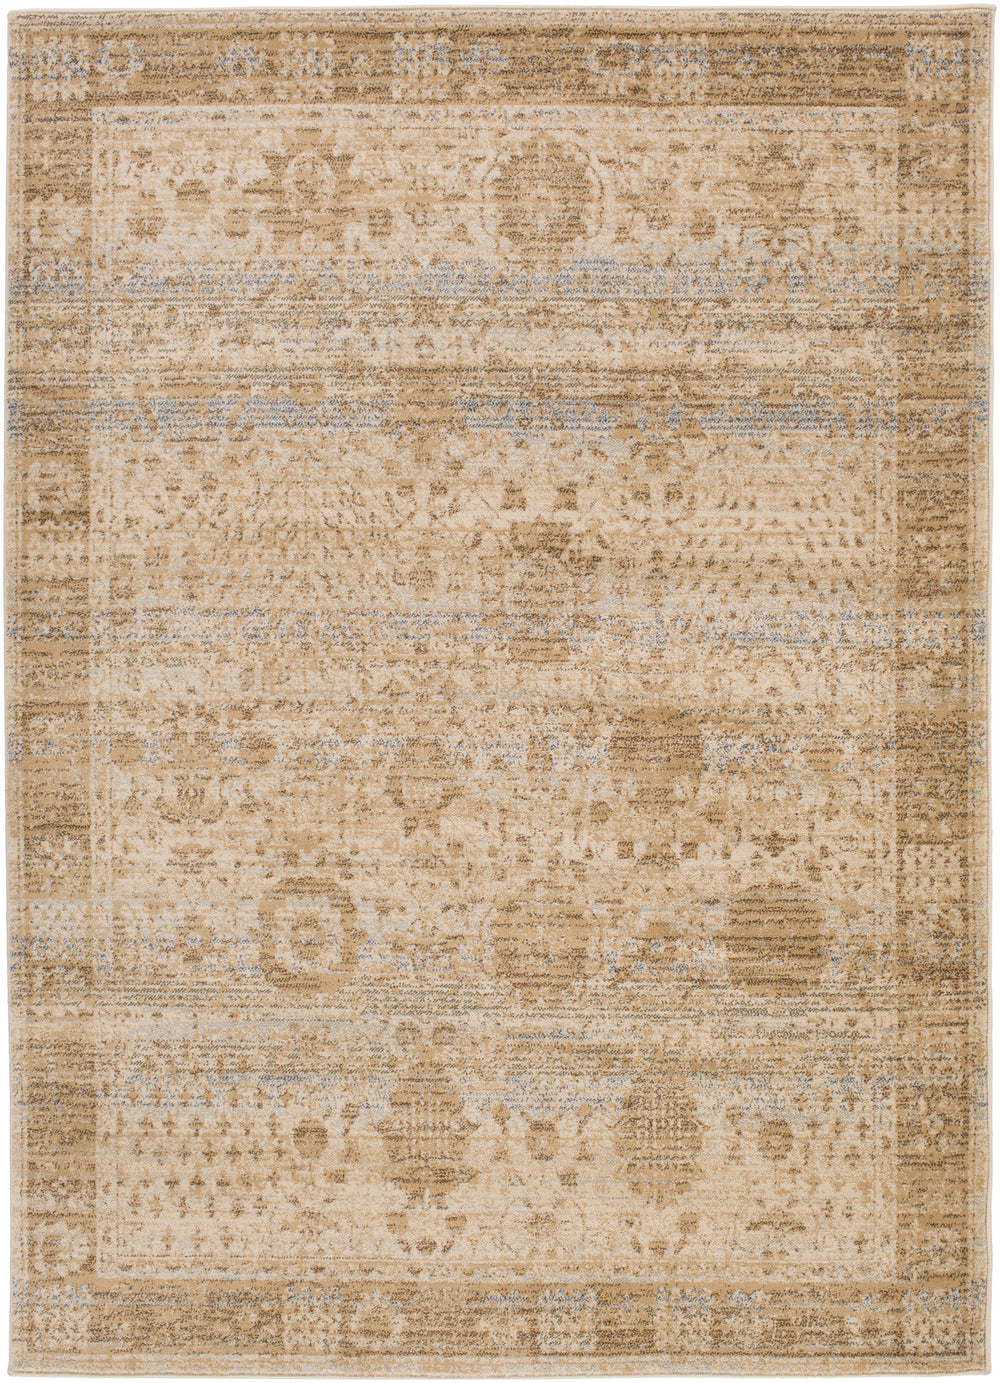 Artistic Weavers Whitman Serenity Whm8801 Area Rug Rug